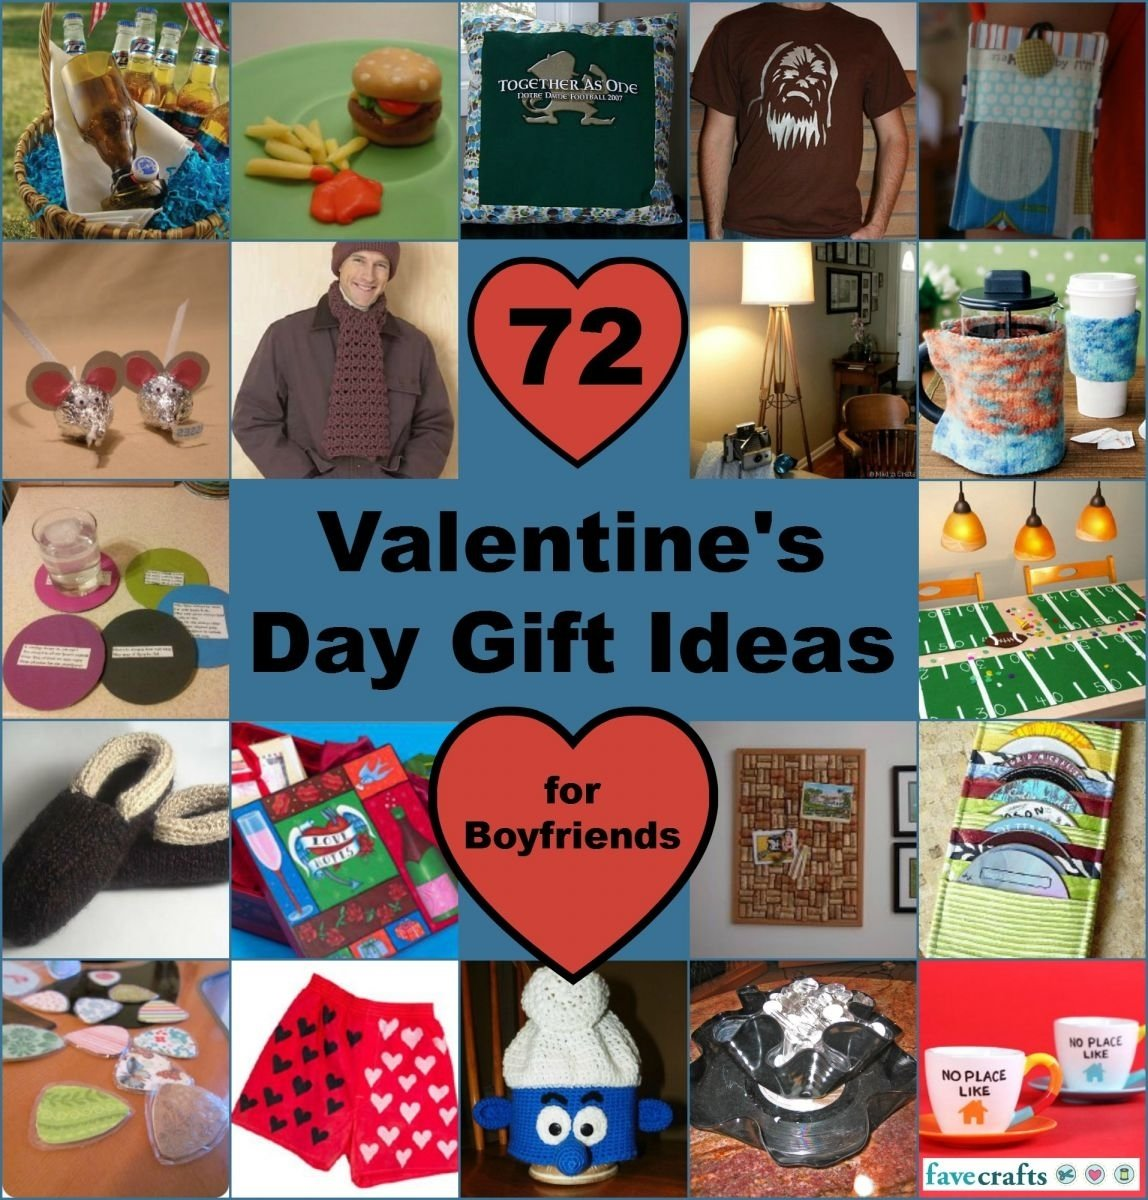 10 Spectacular Idea For Valentines Day Boyfriend good gifts for him for valentines day valentines day present for 1 2021